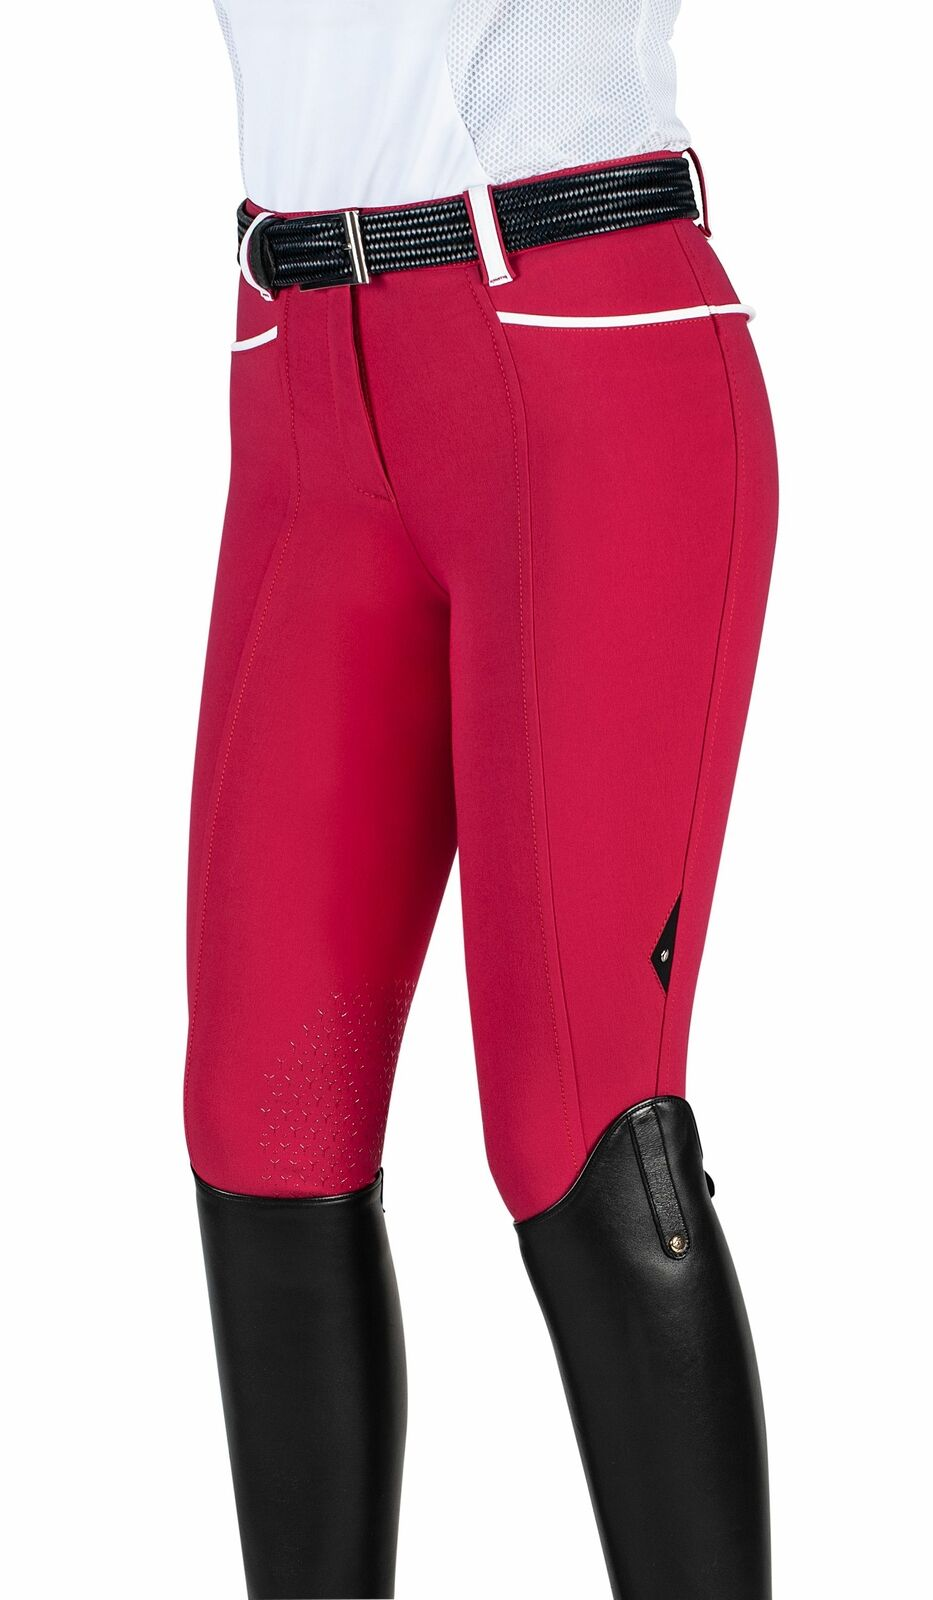 Equiline Juliette señora vollgrip reithose, Cherry rojo, SS 2019